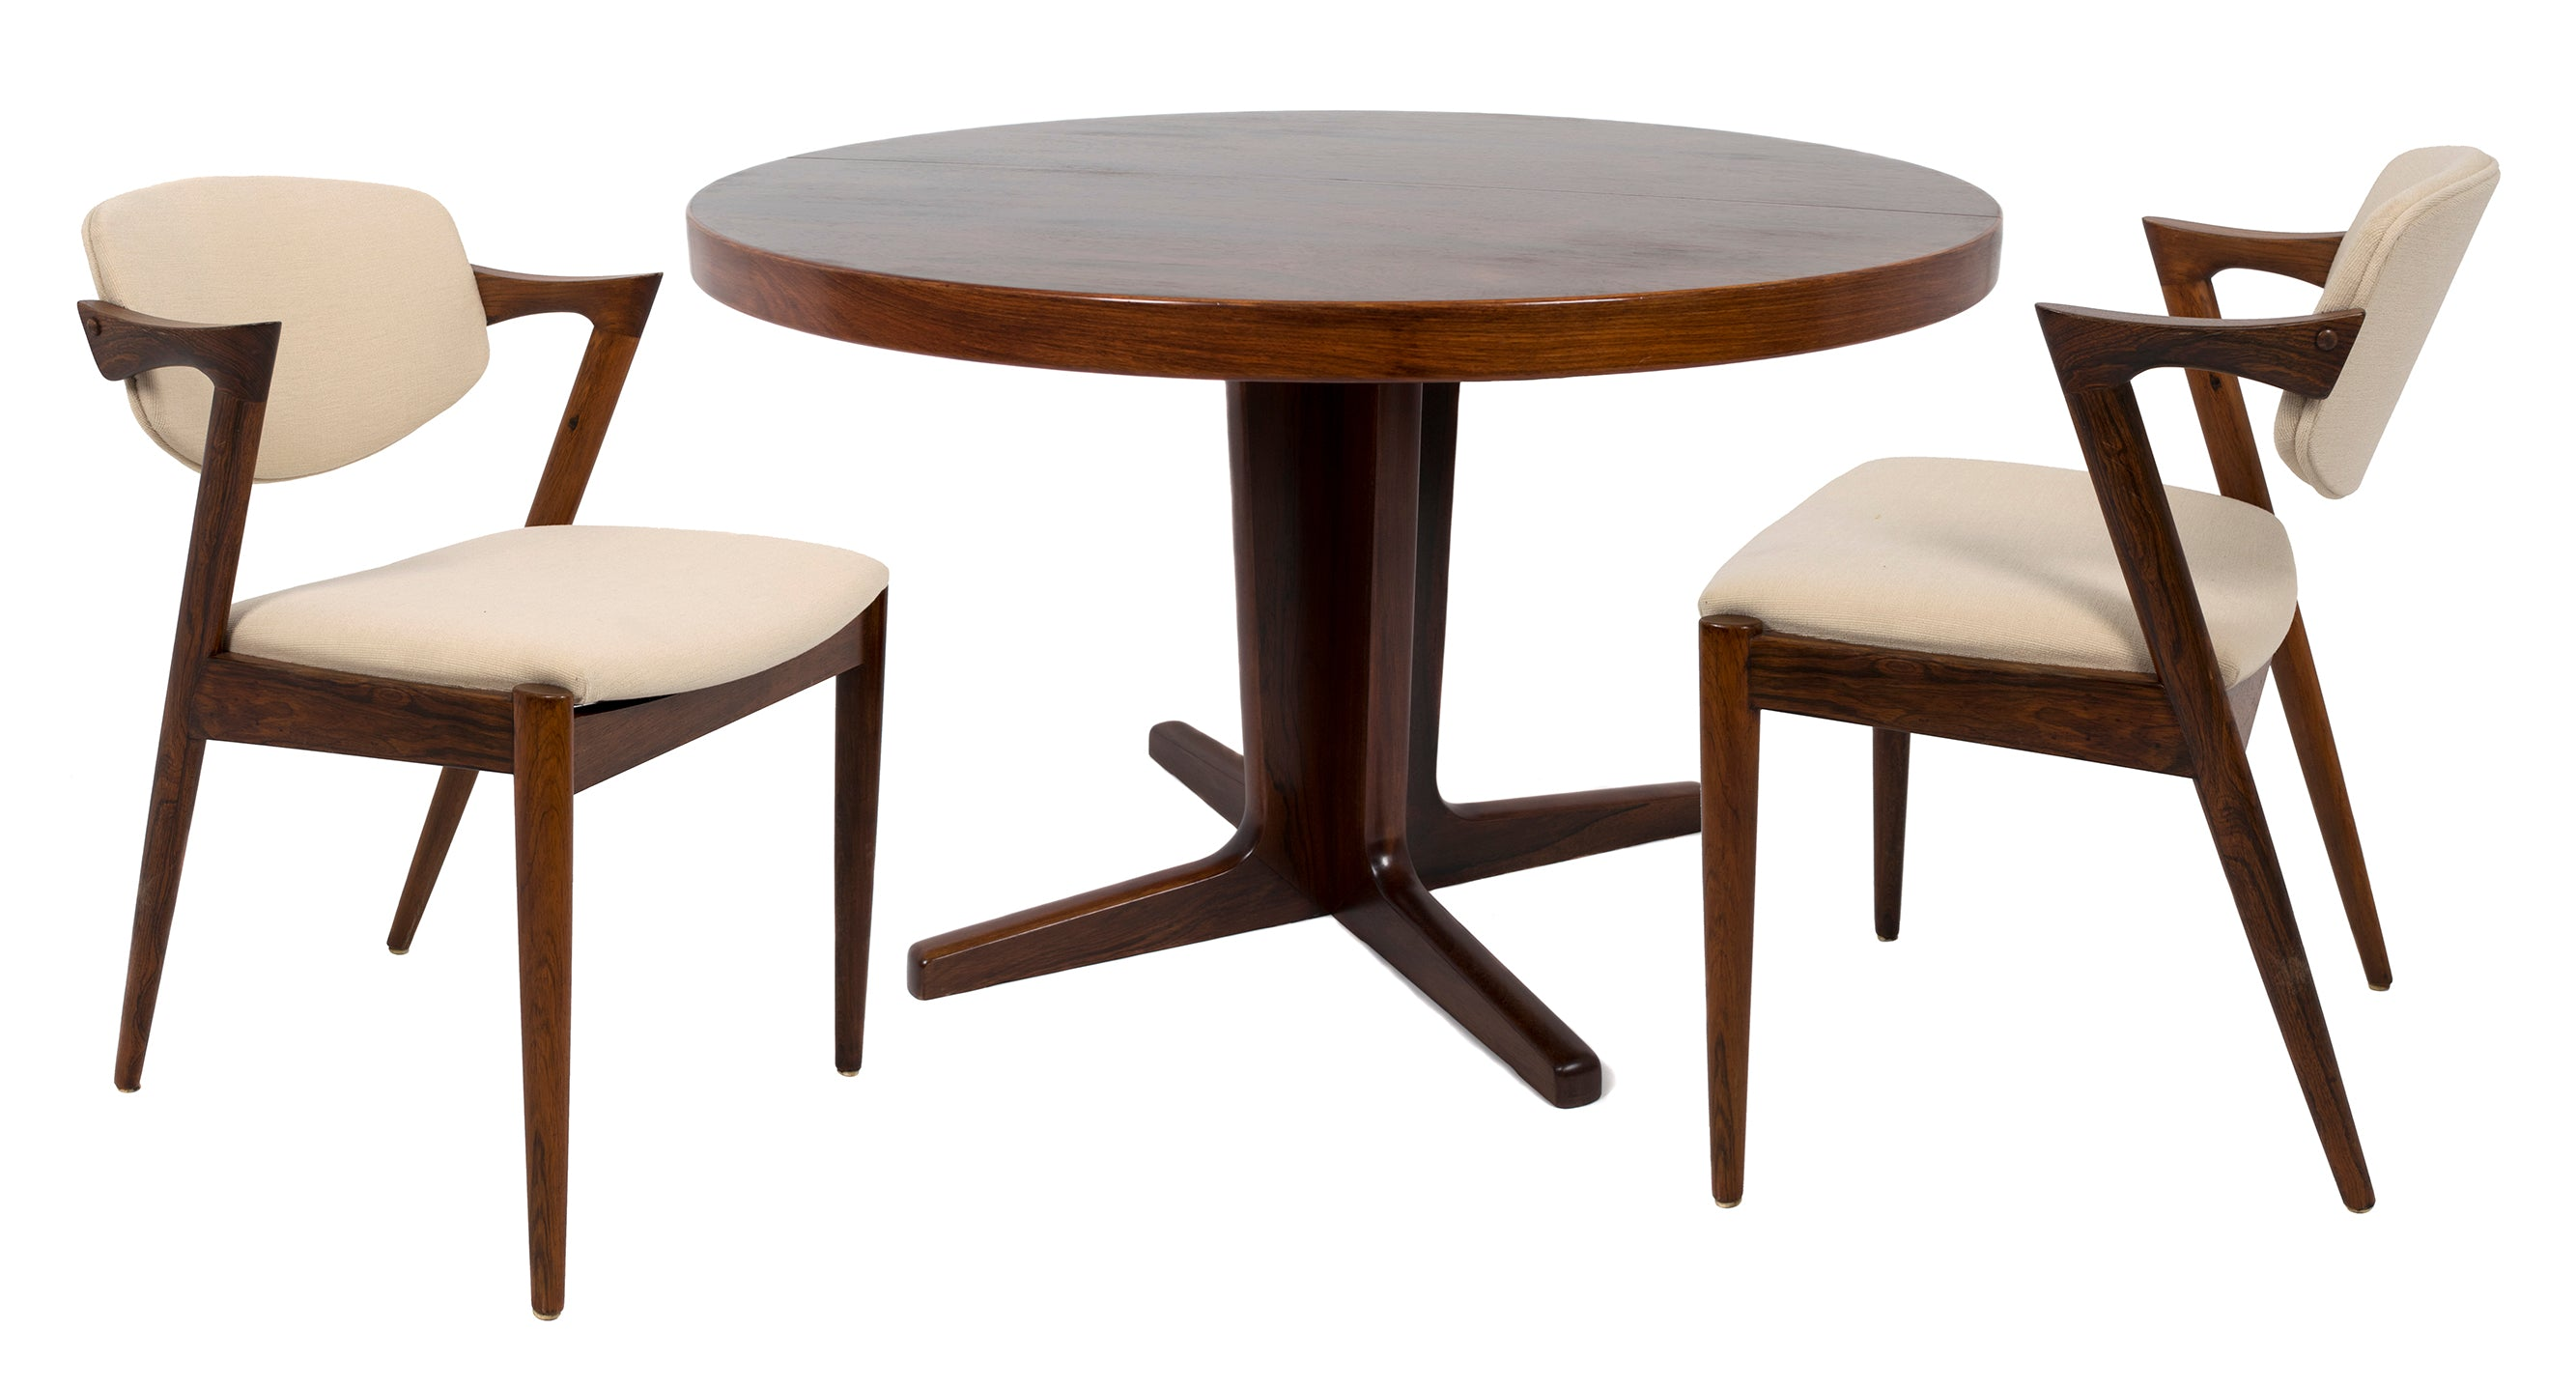 KAI KRISTIANSEN DINING TABLE AND SIX CHAIRS   MODEL 42,CIRCA 1950    Colletti Gallery